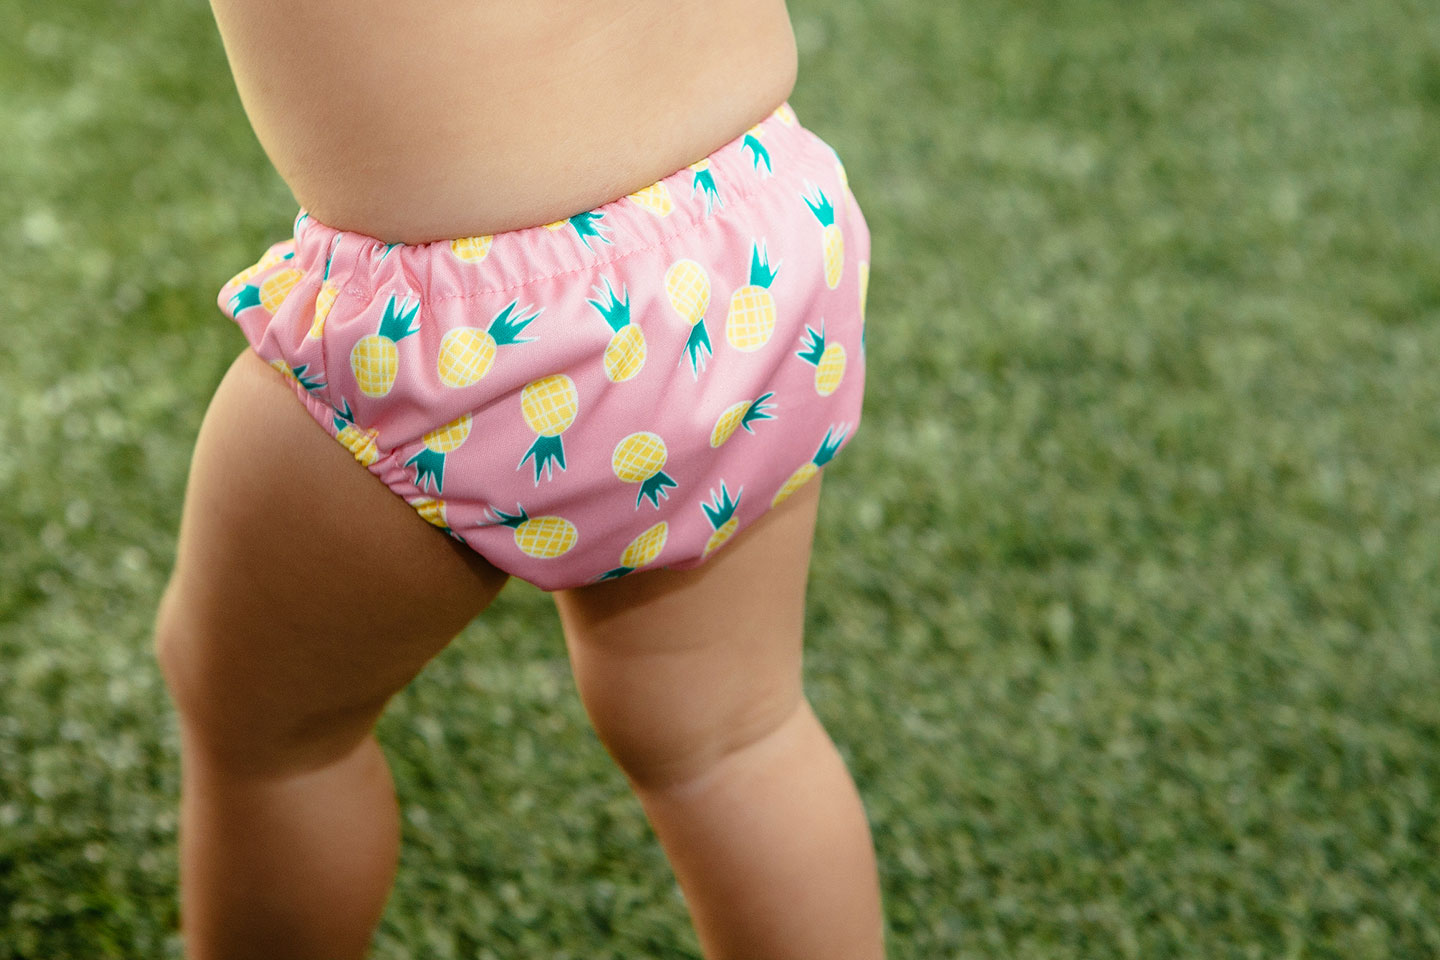 Being eco-friendly just got more stylish with these 5 very cool reusable swim diapers